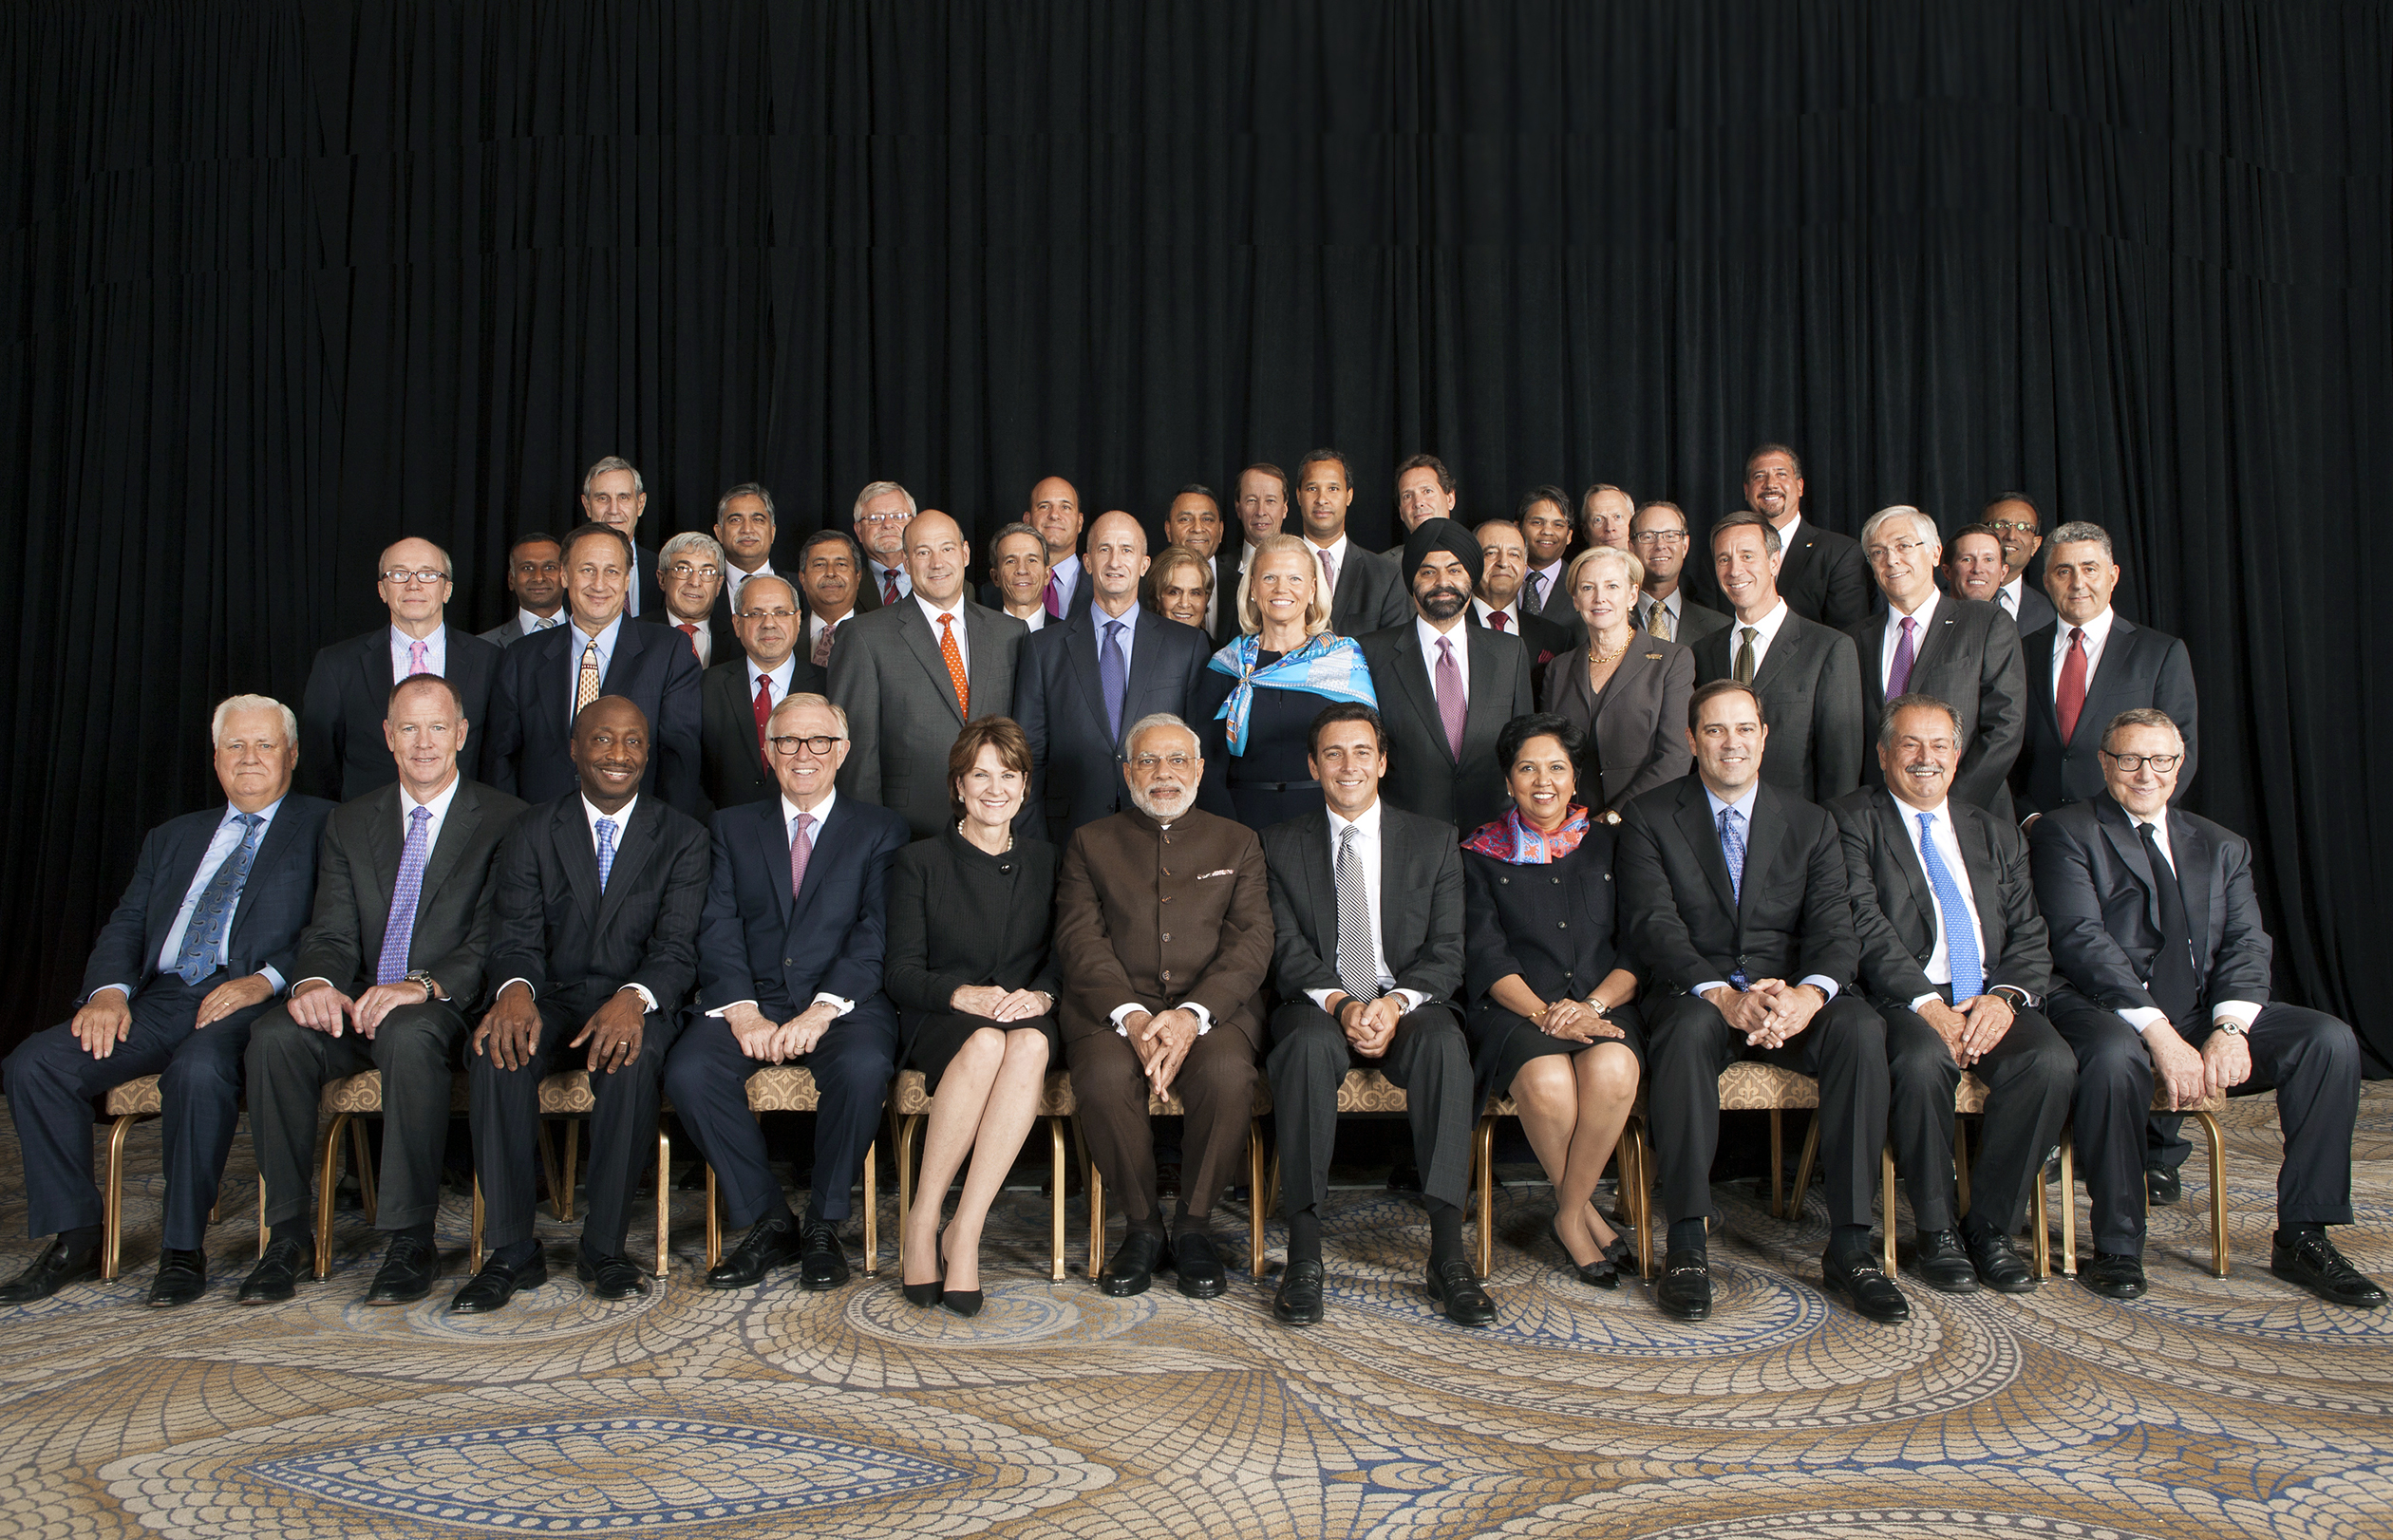 Prime Minister Narendra Modi (center) welcomes a throng of top executives at a 2015 Fortune summit in New York.